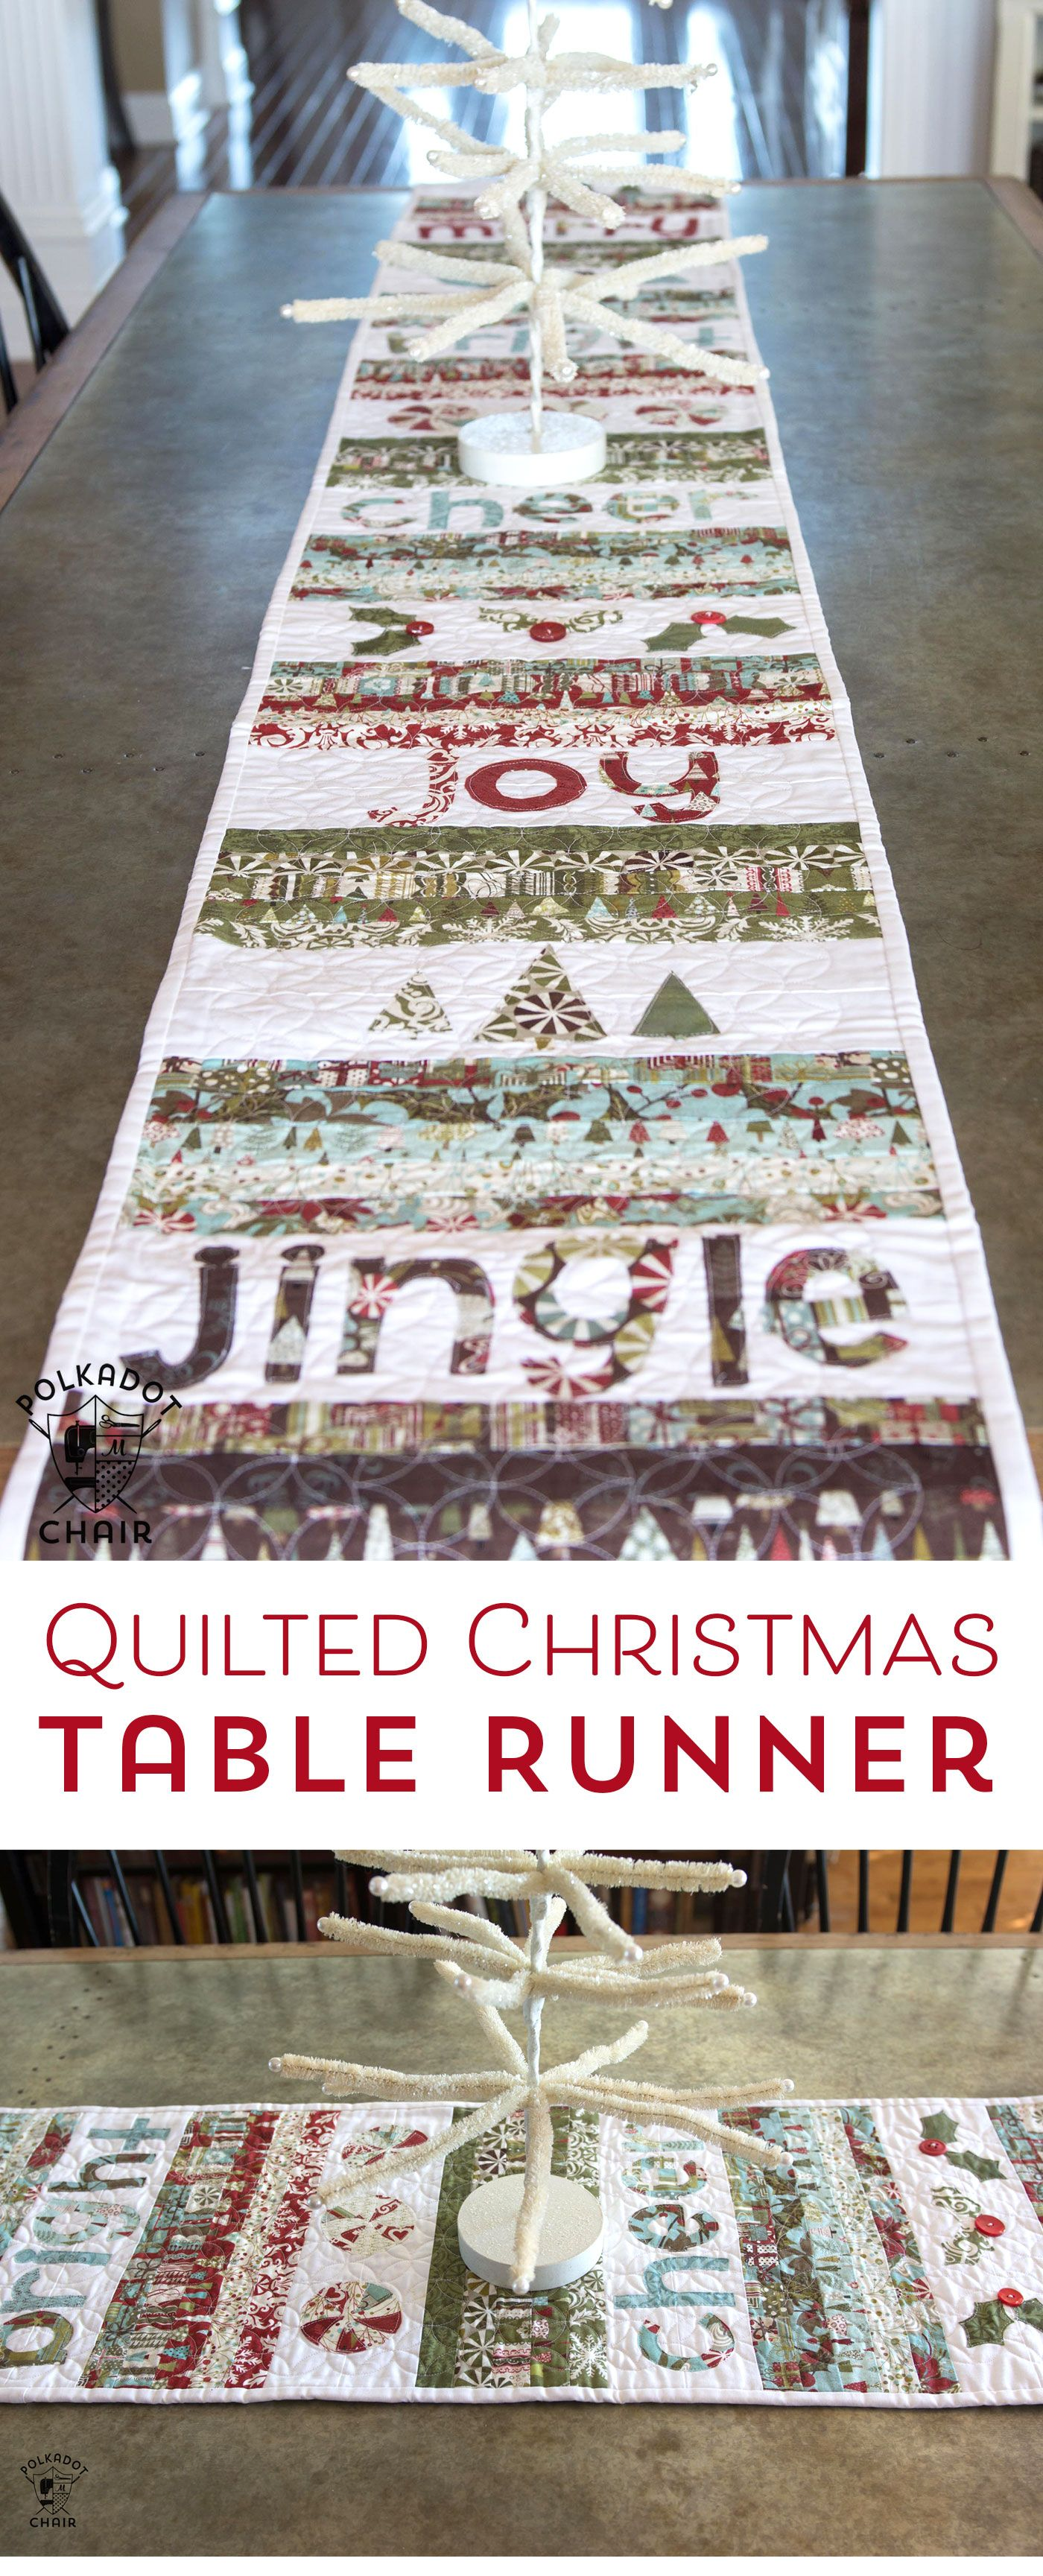 Merry cheer quilted christmas table runner pattern sewing free sewing pattern for a quilted christmas table runner watchthetrailerfo